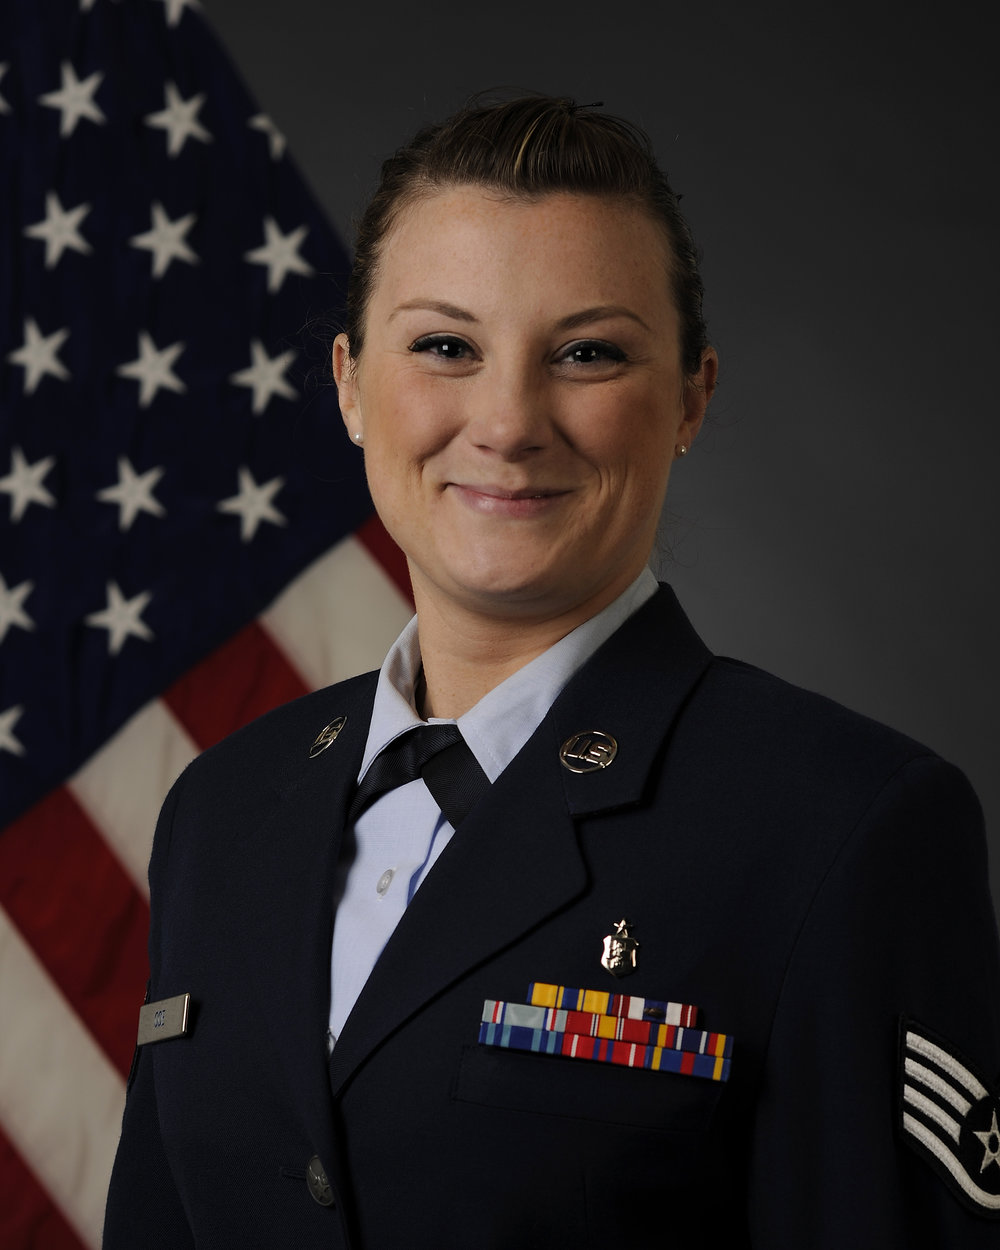 Staff Sergeant Ashley E. Coe Eielson Air Force Base 354th MDG/MDOS SSgt Coe is a paramedic with the 354th Medical Group at Eielson Air Force Base. She is recognized for her willingness to go above and beyond expectations, both on and off duty. SSgt Coe is being recommended for this honor due to her hard-charging work ethic, and also the conviction with which she commits to every act of service. She is also a quick thinker who helped save a patient's life by recognizing a stroke early on. Coe has helped her community in many ways including aiding the oversight of the Public Access Defibrillator program with 68 devices deployed, developing a medication administration course to maintain base health personnel's proficiency, and providing volunteer medical coverage for Ben Eielson High School football games. She has delivered medical training to 60 firefighters, instructed Basic Life Support (BLS) and Emergency Medical Technician (EMT) courses for the base and public, coordinated remote range support for training exercises, and provided sole medical support for bomb squads. She also volunteers for live burn training events and cold-water rescue training